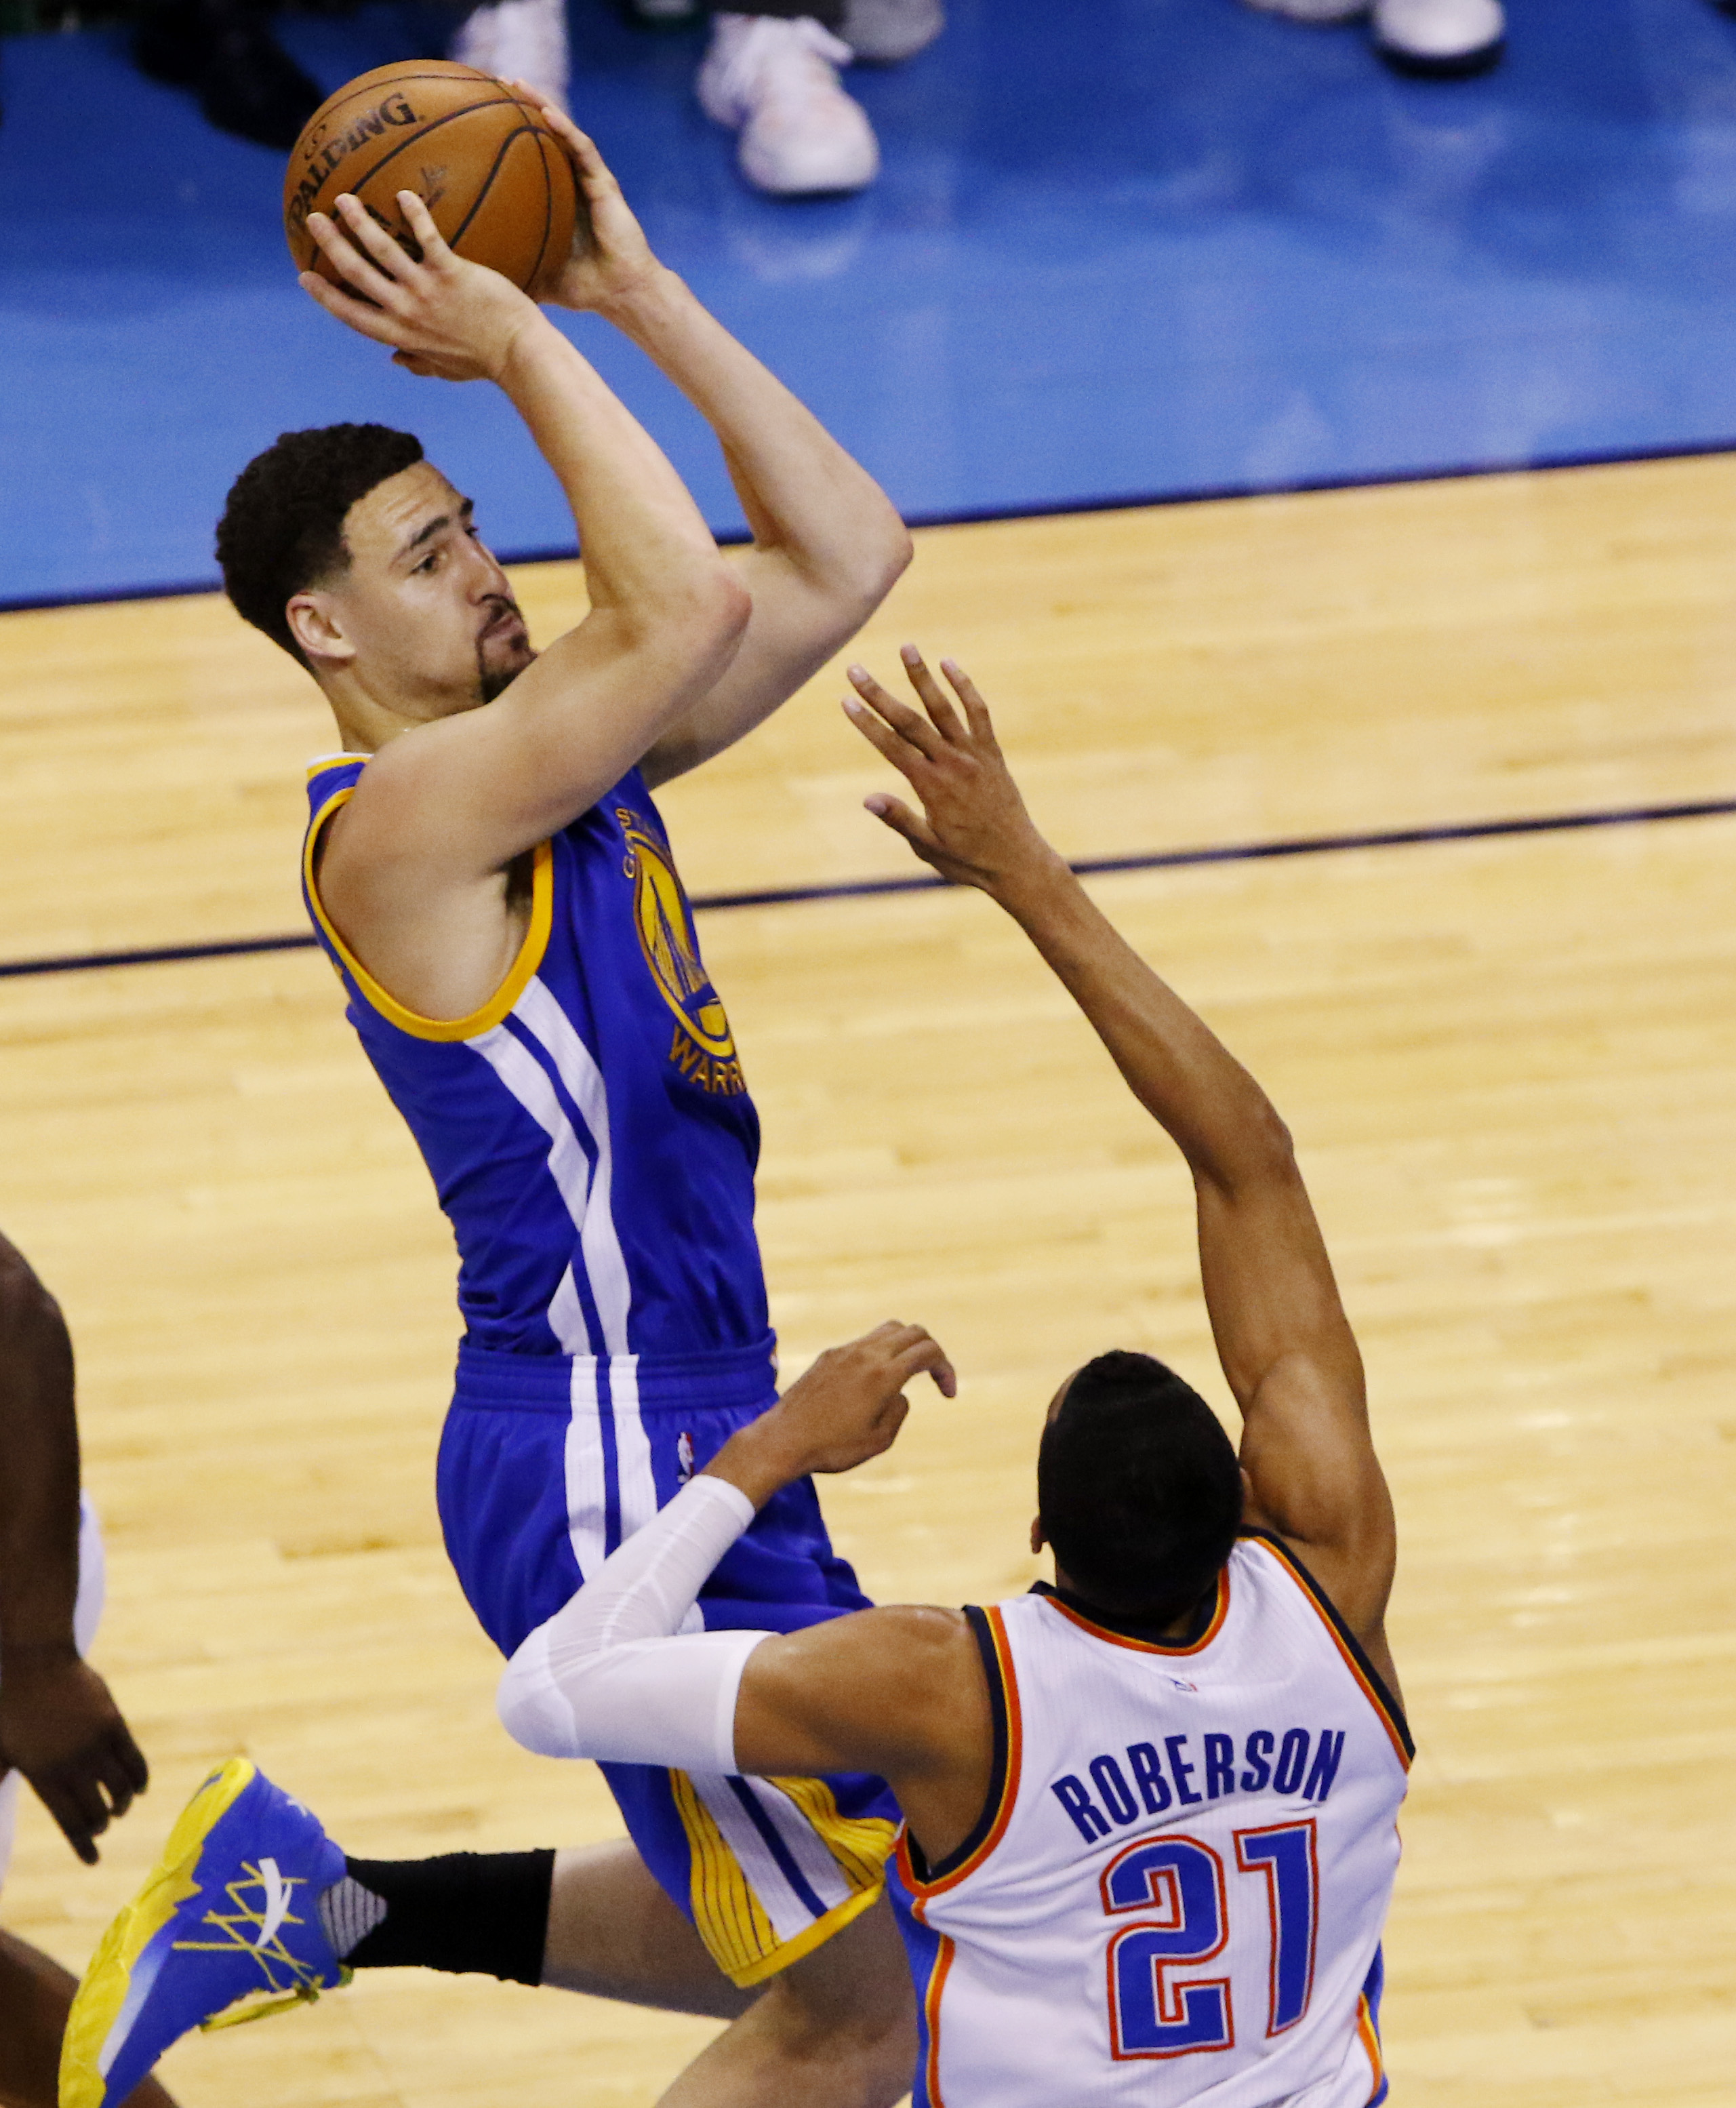 Golden State Warriors klay thompson Anta KT 1 sneakers playoff